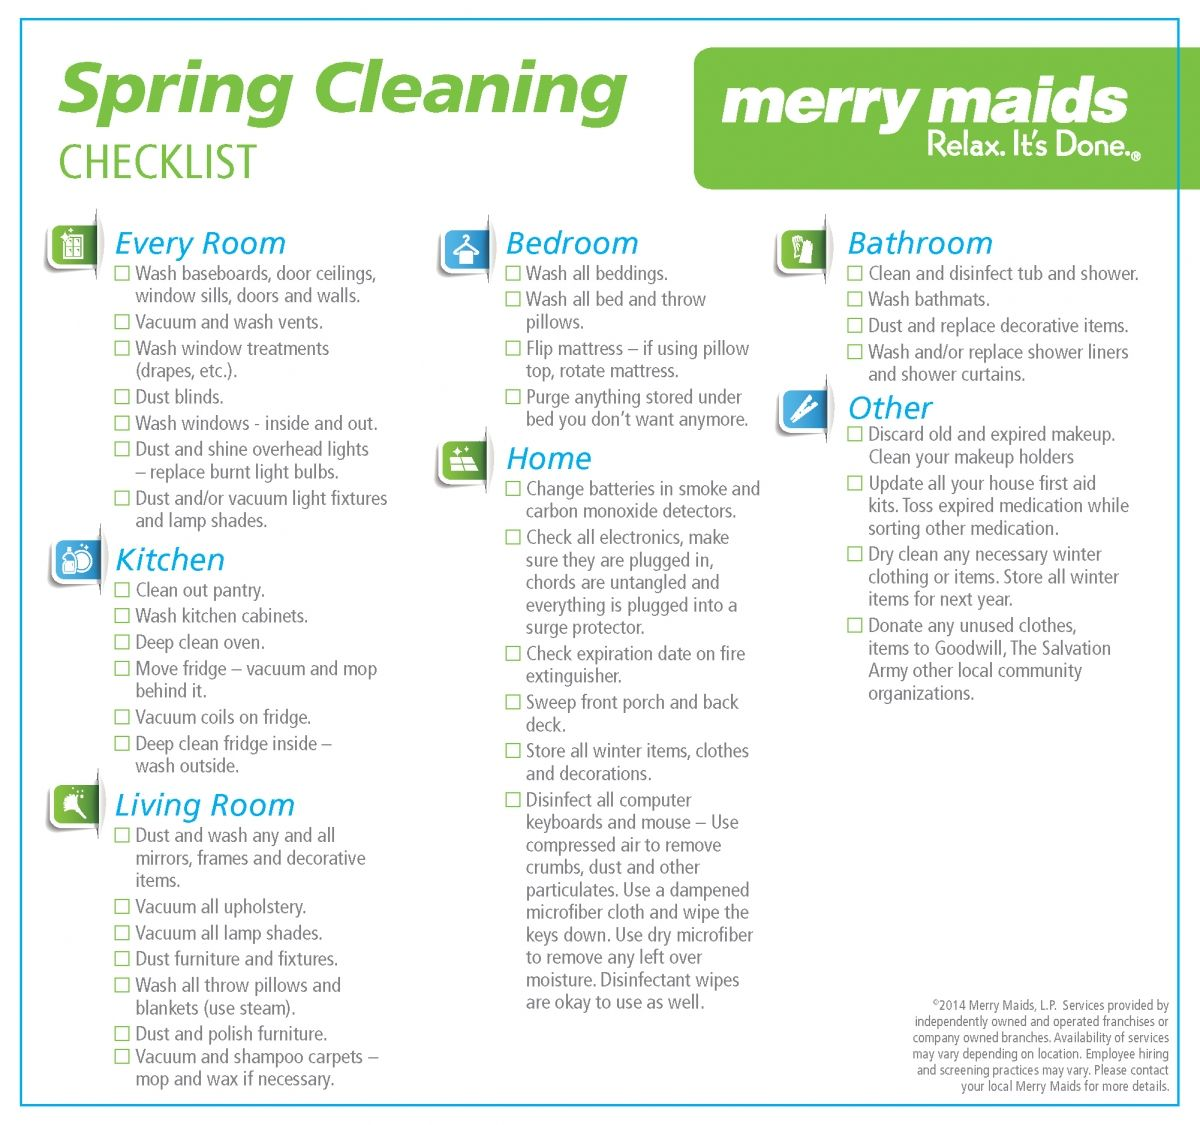 Merrymaids Put Together A Nice Spring Cleaning Checklist